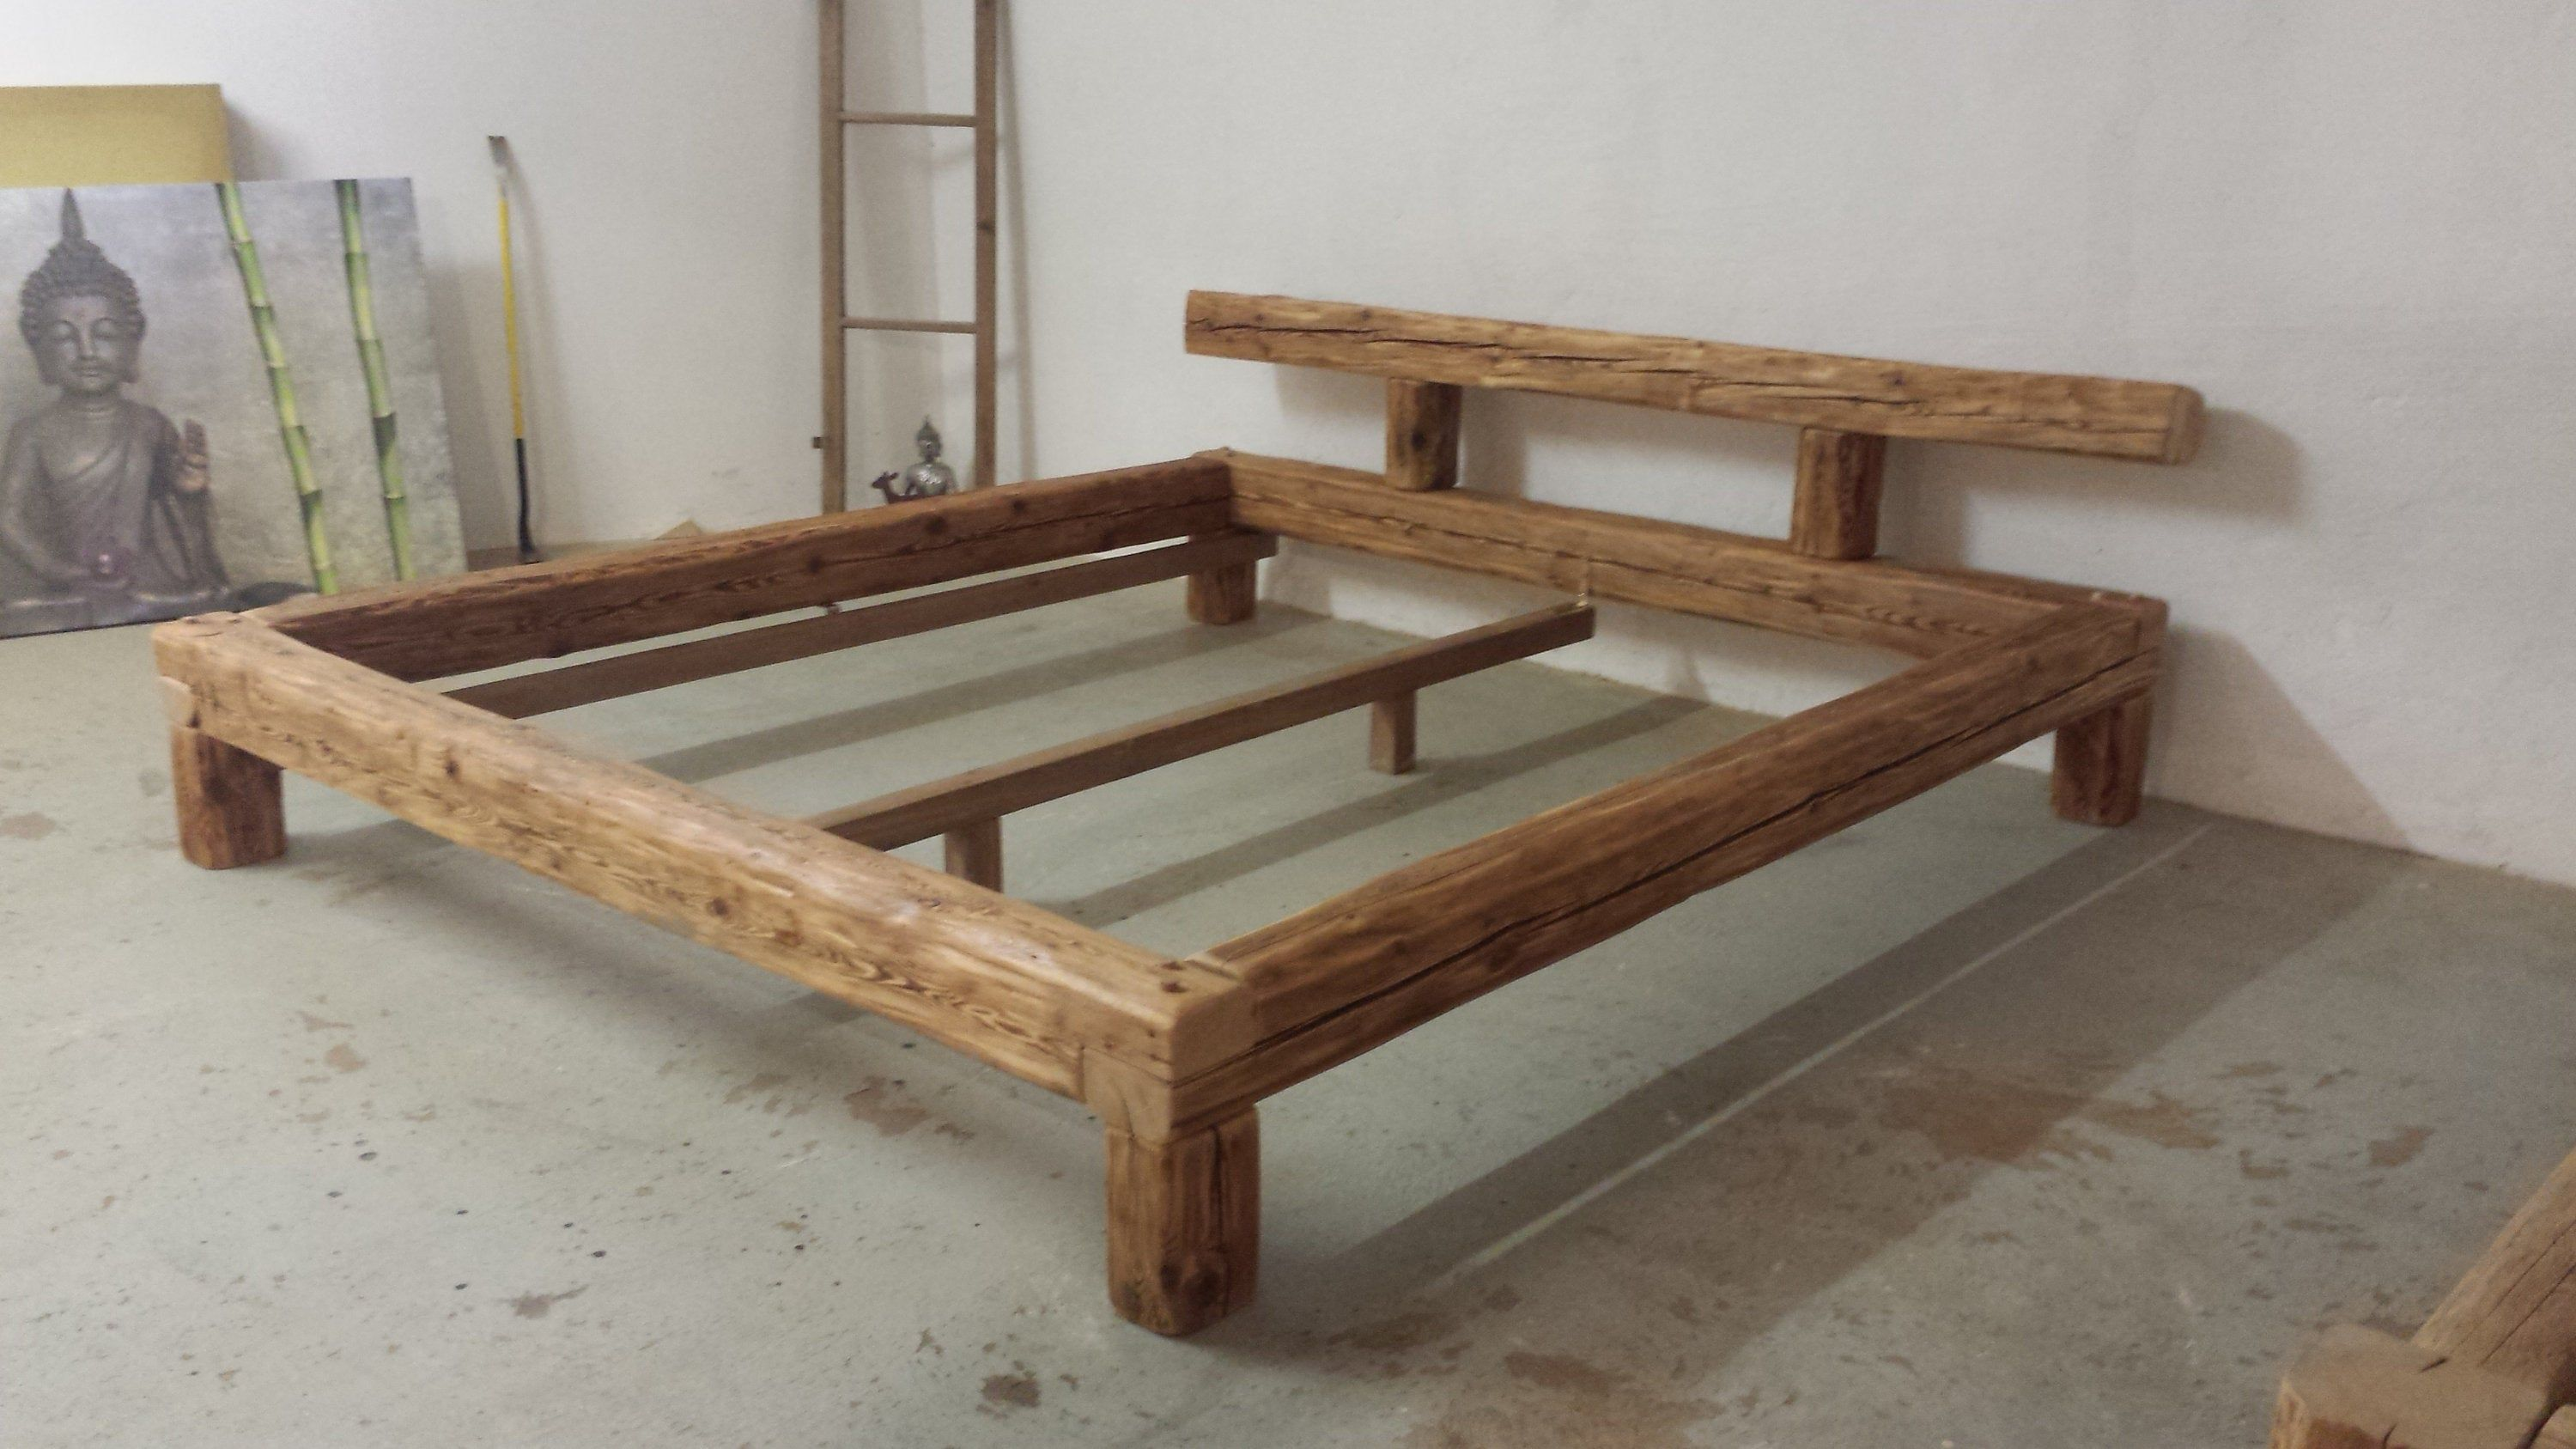 Old Wood Beam Bed 180 X 200 Cm Hand Chopped Wooden Nails Etsy